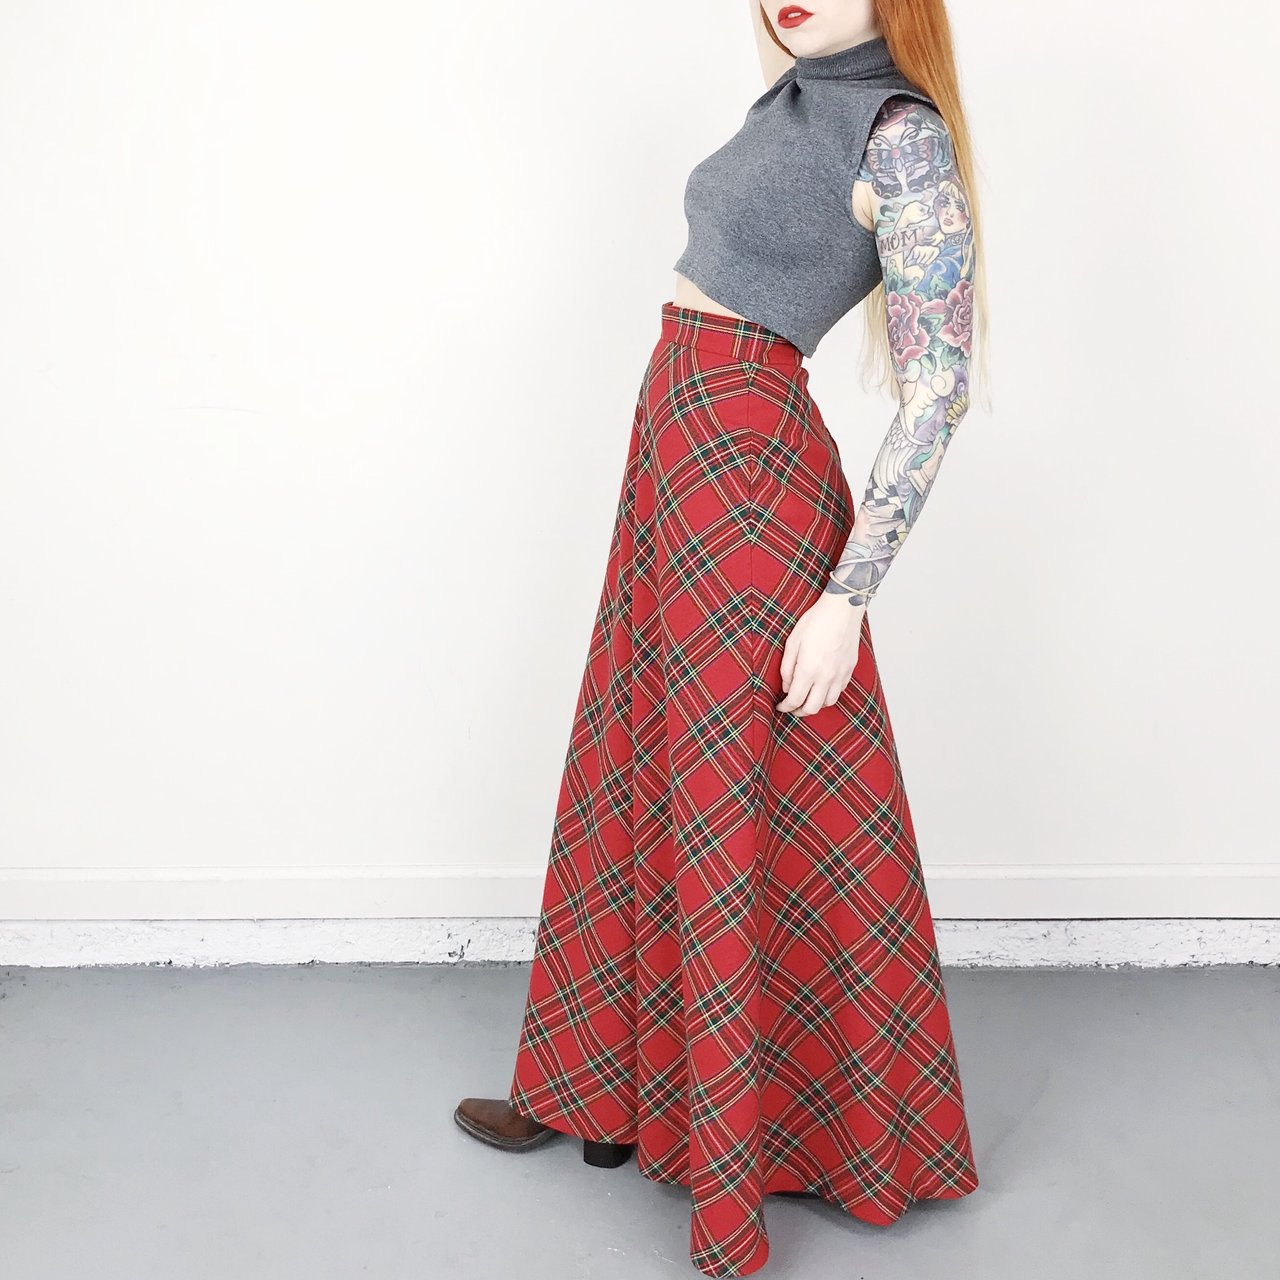 60 s vintage plaid print high waisted wool tartan red and    - Depop 8453b0221